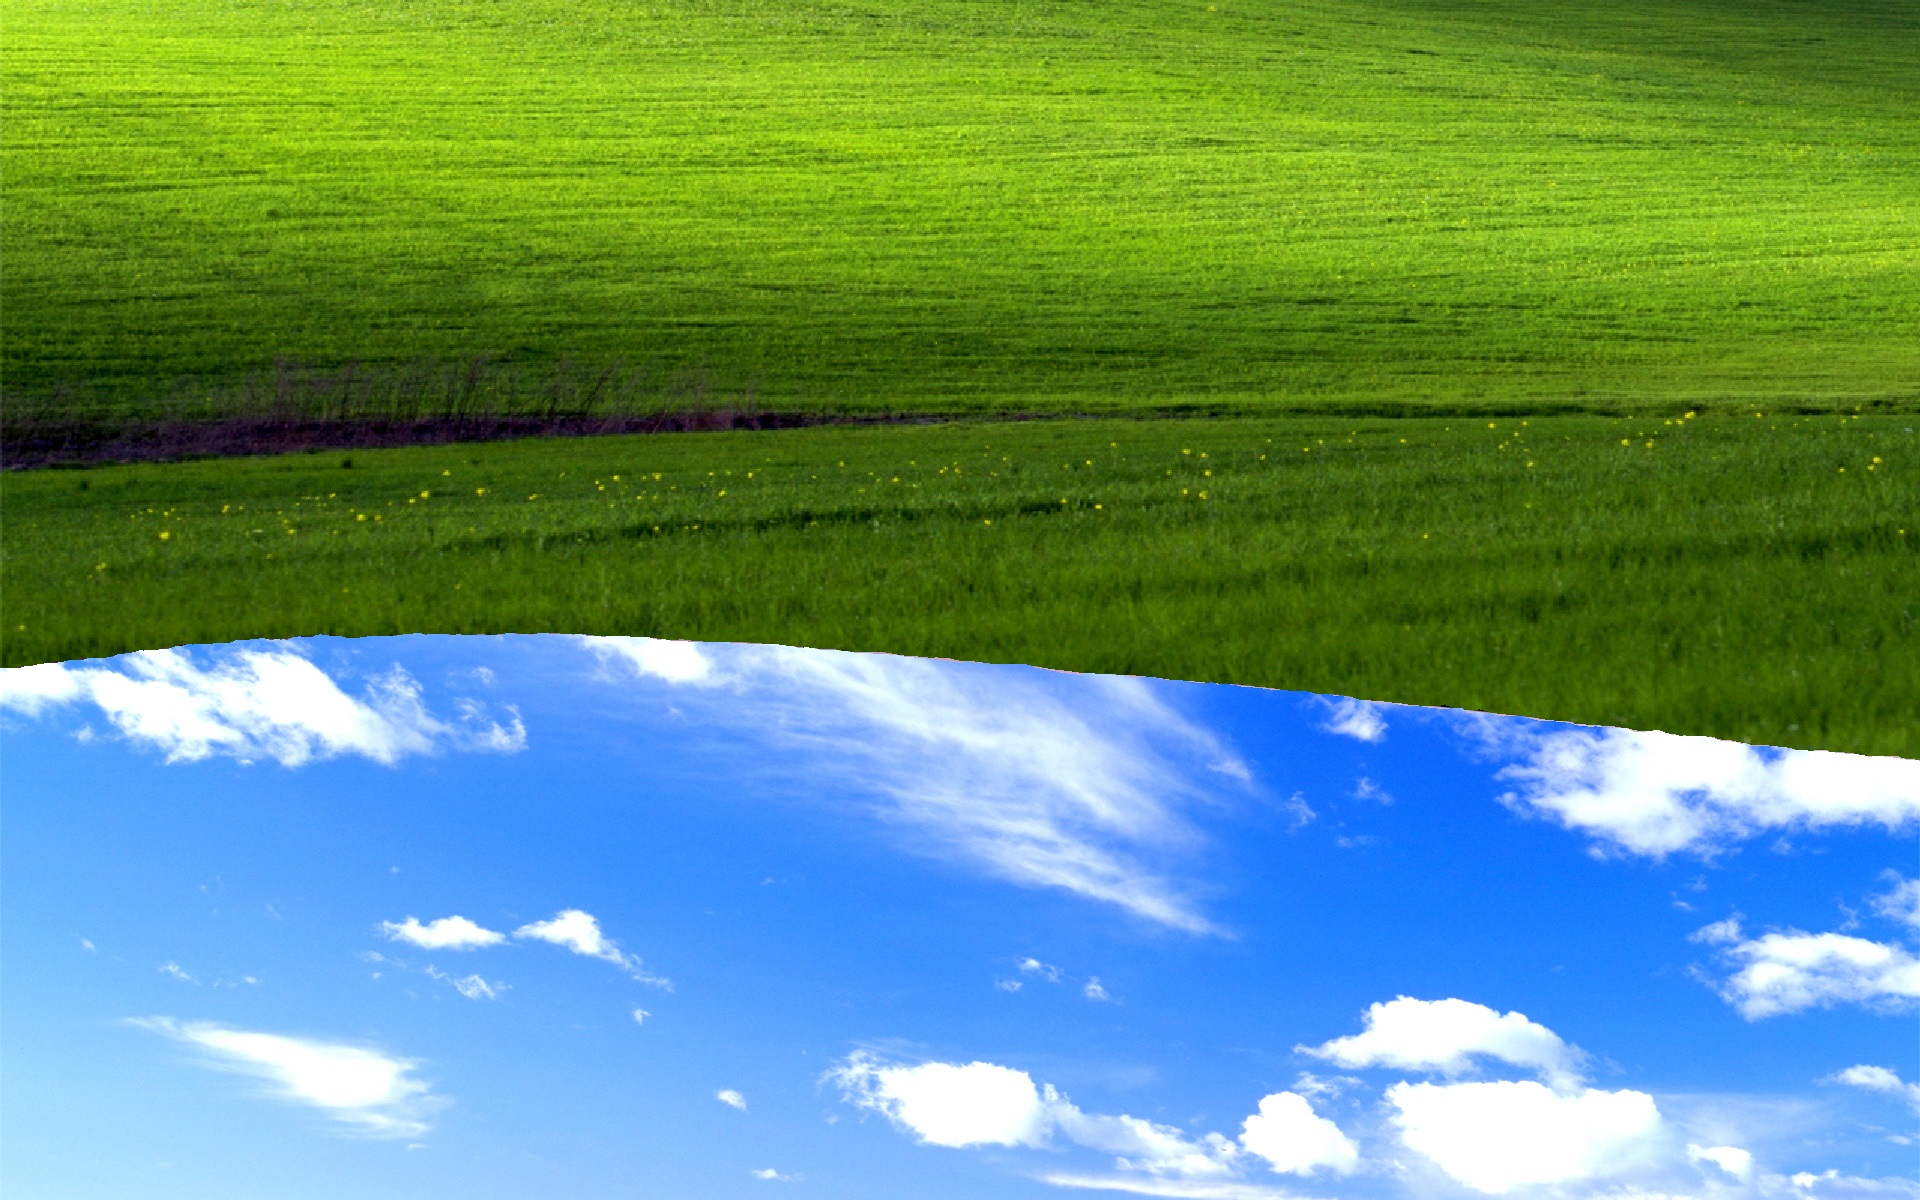 windows xp bliss reversed | windows xp bliss wallpaper | know your meme